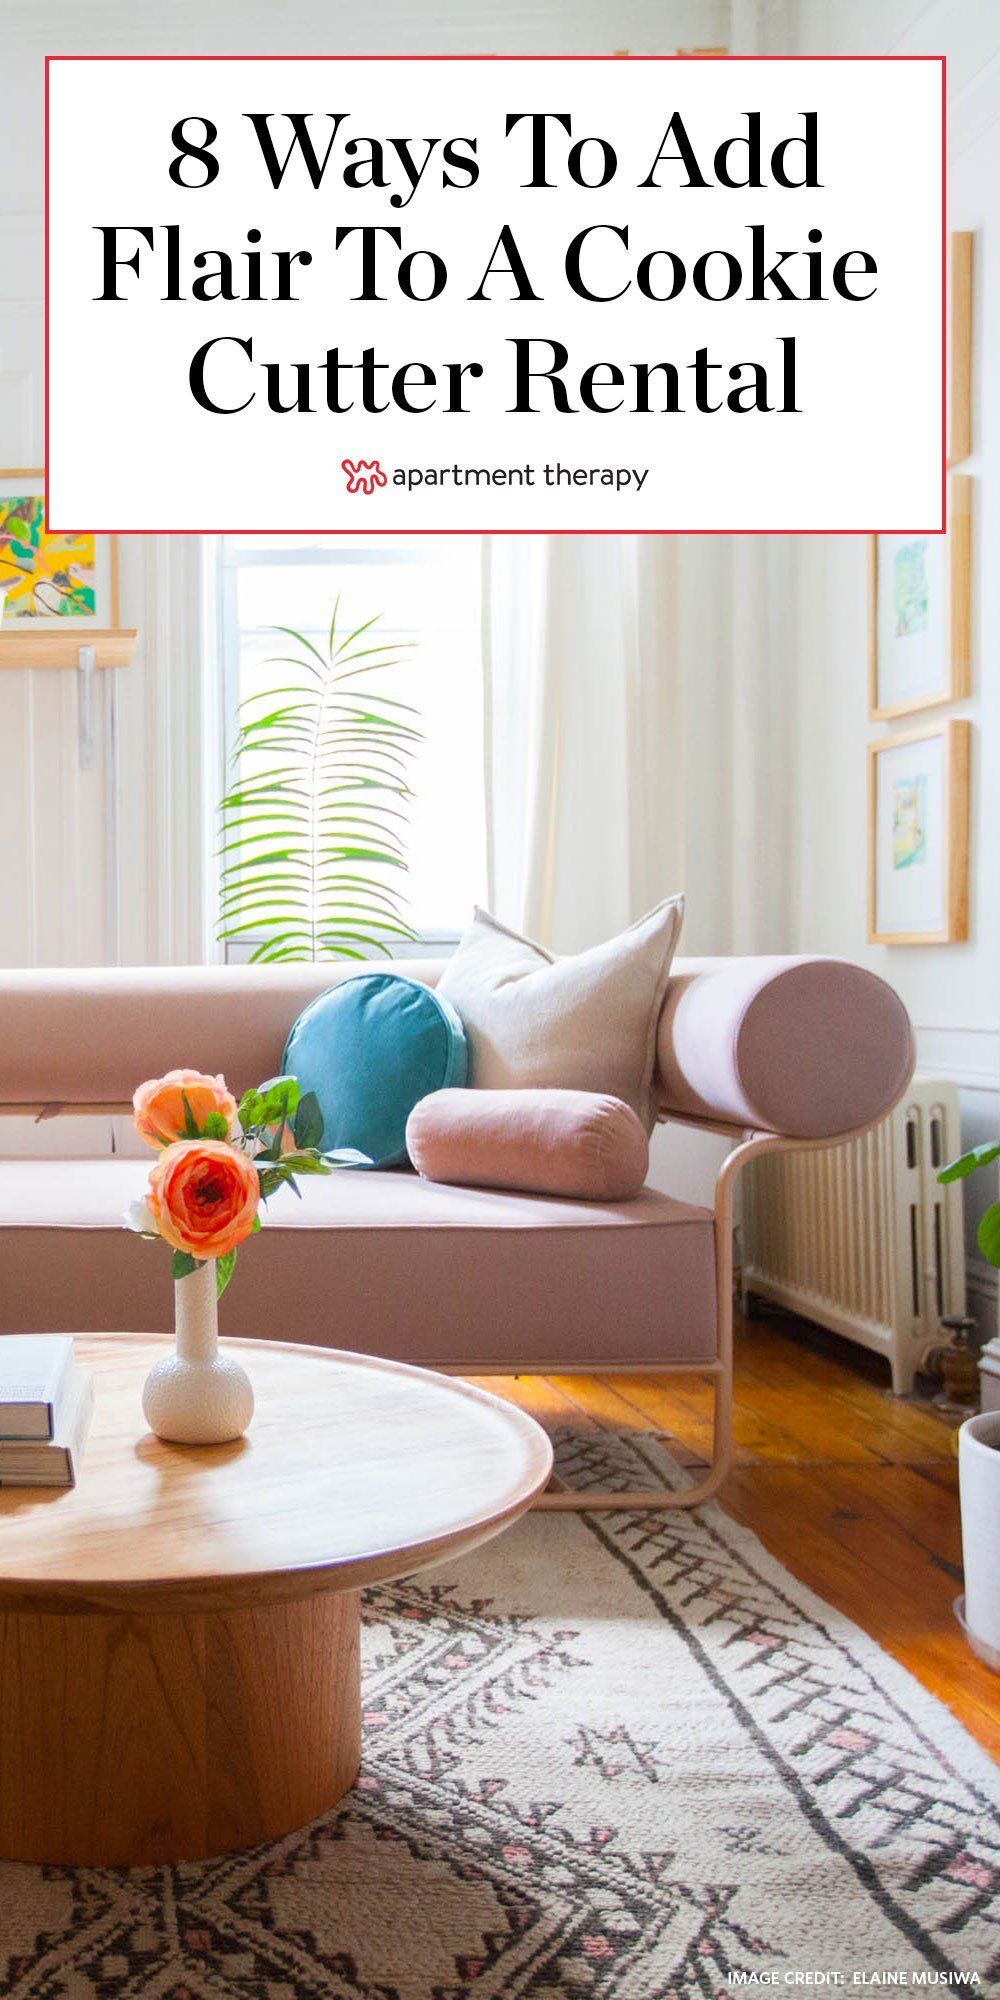 8 Ways To Make A Cookie Cutter Rental Feel Less Sterile According